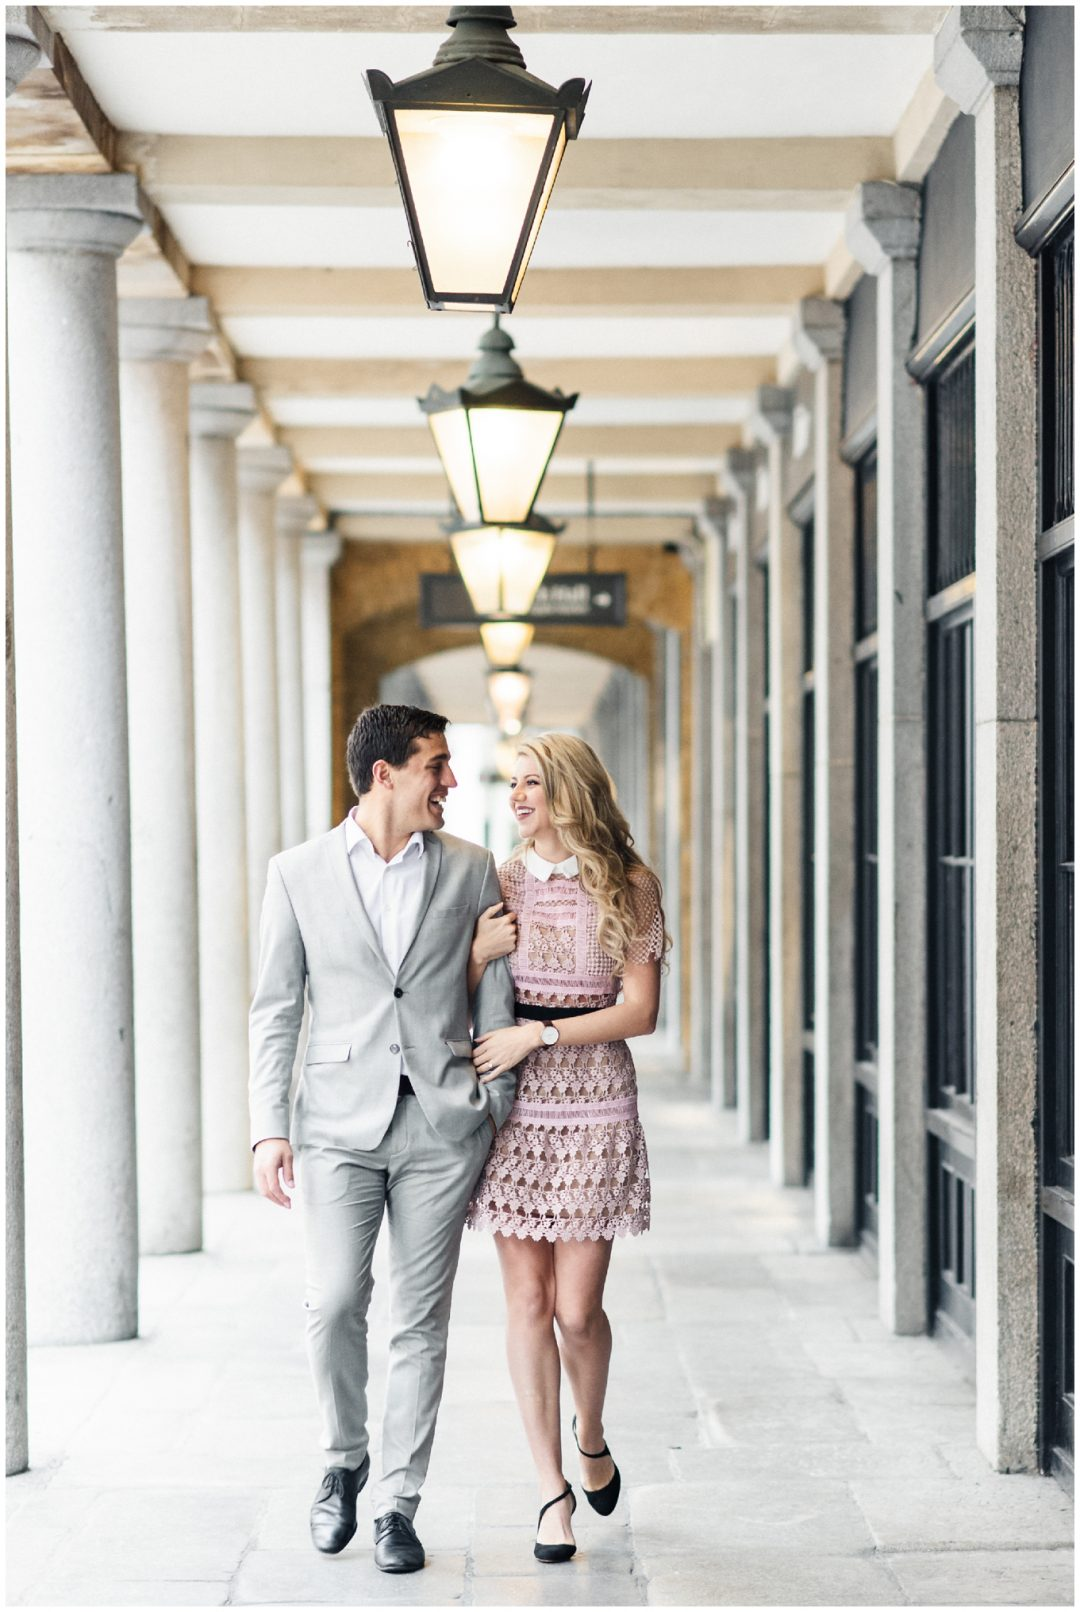 Prettiest Engagement shoot in Trafalgar square, London - lifestyle, engagement - Nkima Photography 2017 London Engagement 0015